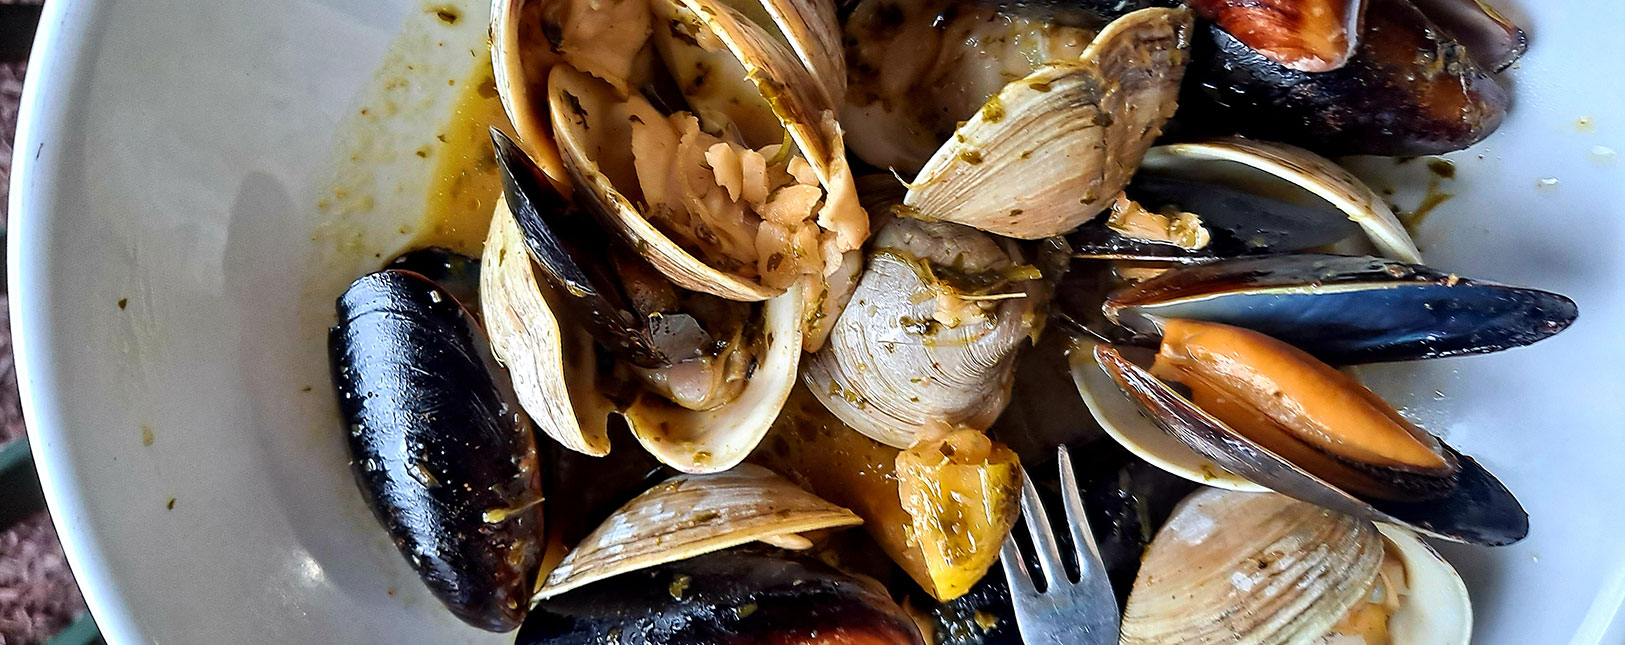 Clams and muscles